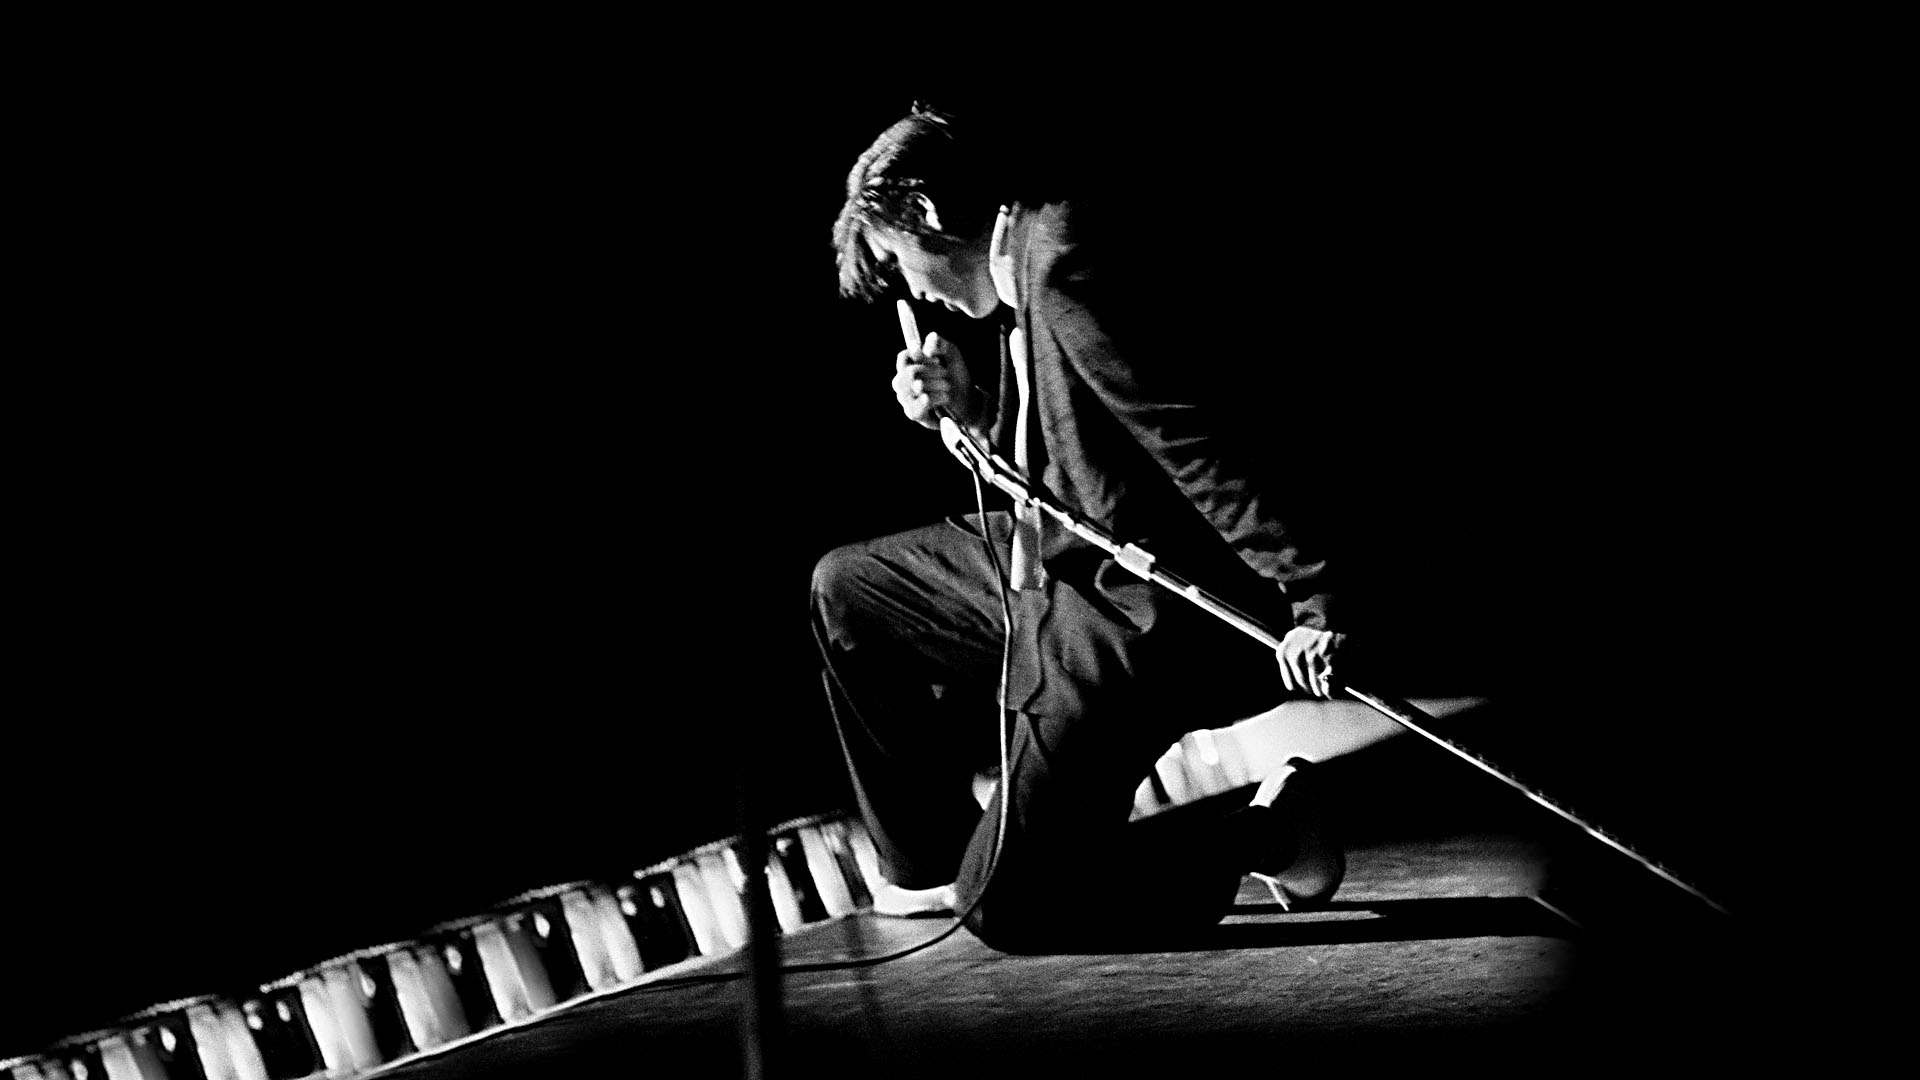 elvis%27 musical style%2C as a musician and impact as a vocalist and stage performer essay Elvis aaron presley (january 8, 1935 - august 16, 1977), often known simply as elvis and also called the king of rock 'n' roll or simply the king, was an american singer and actor.